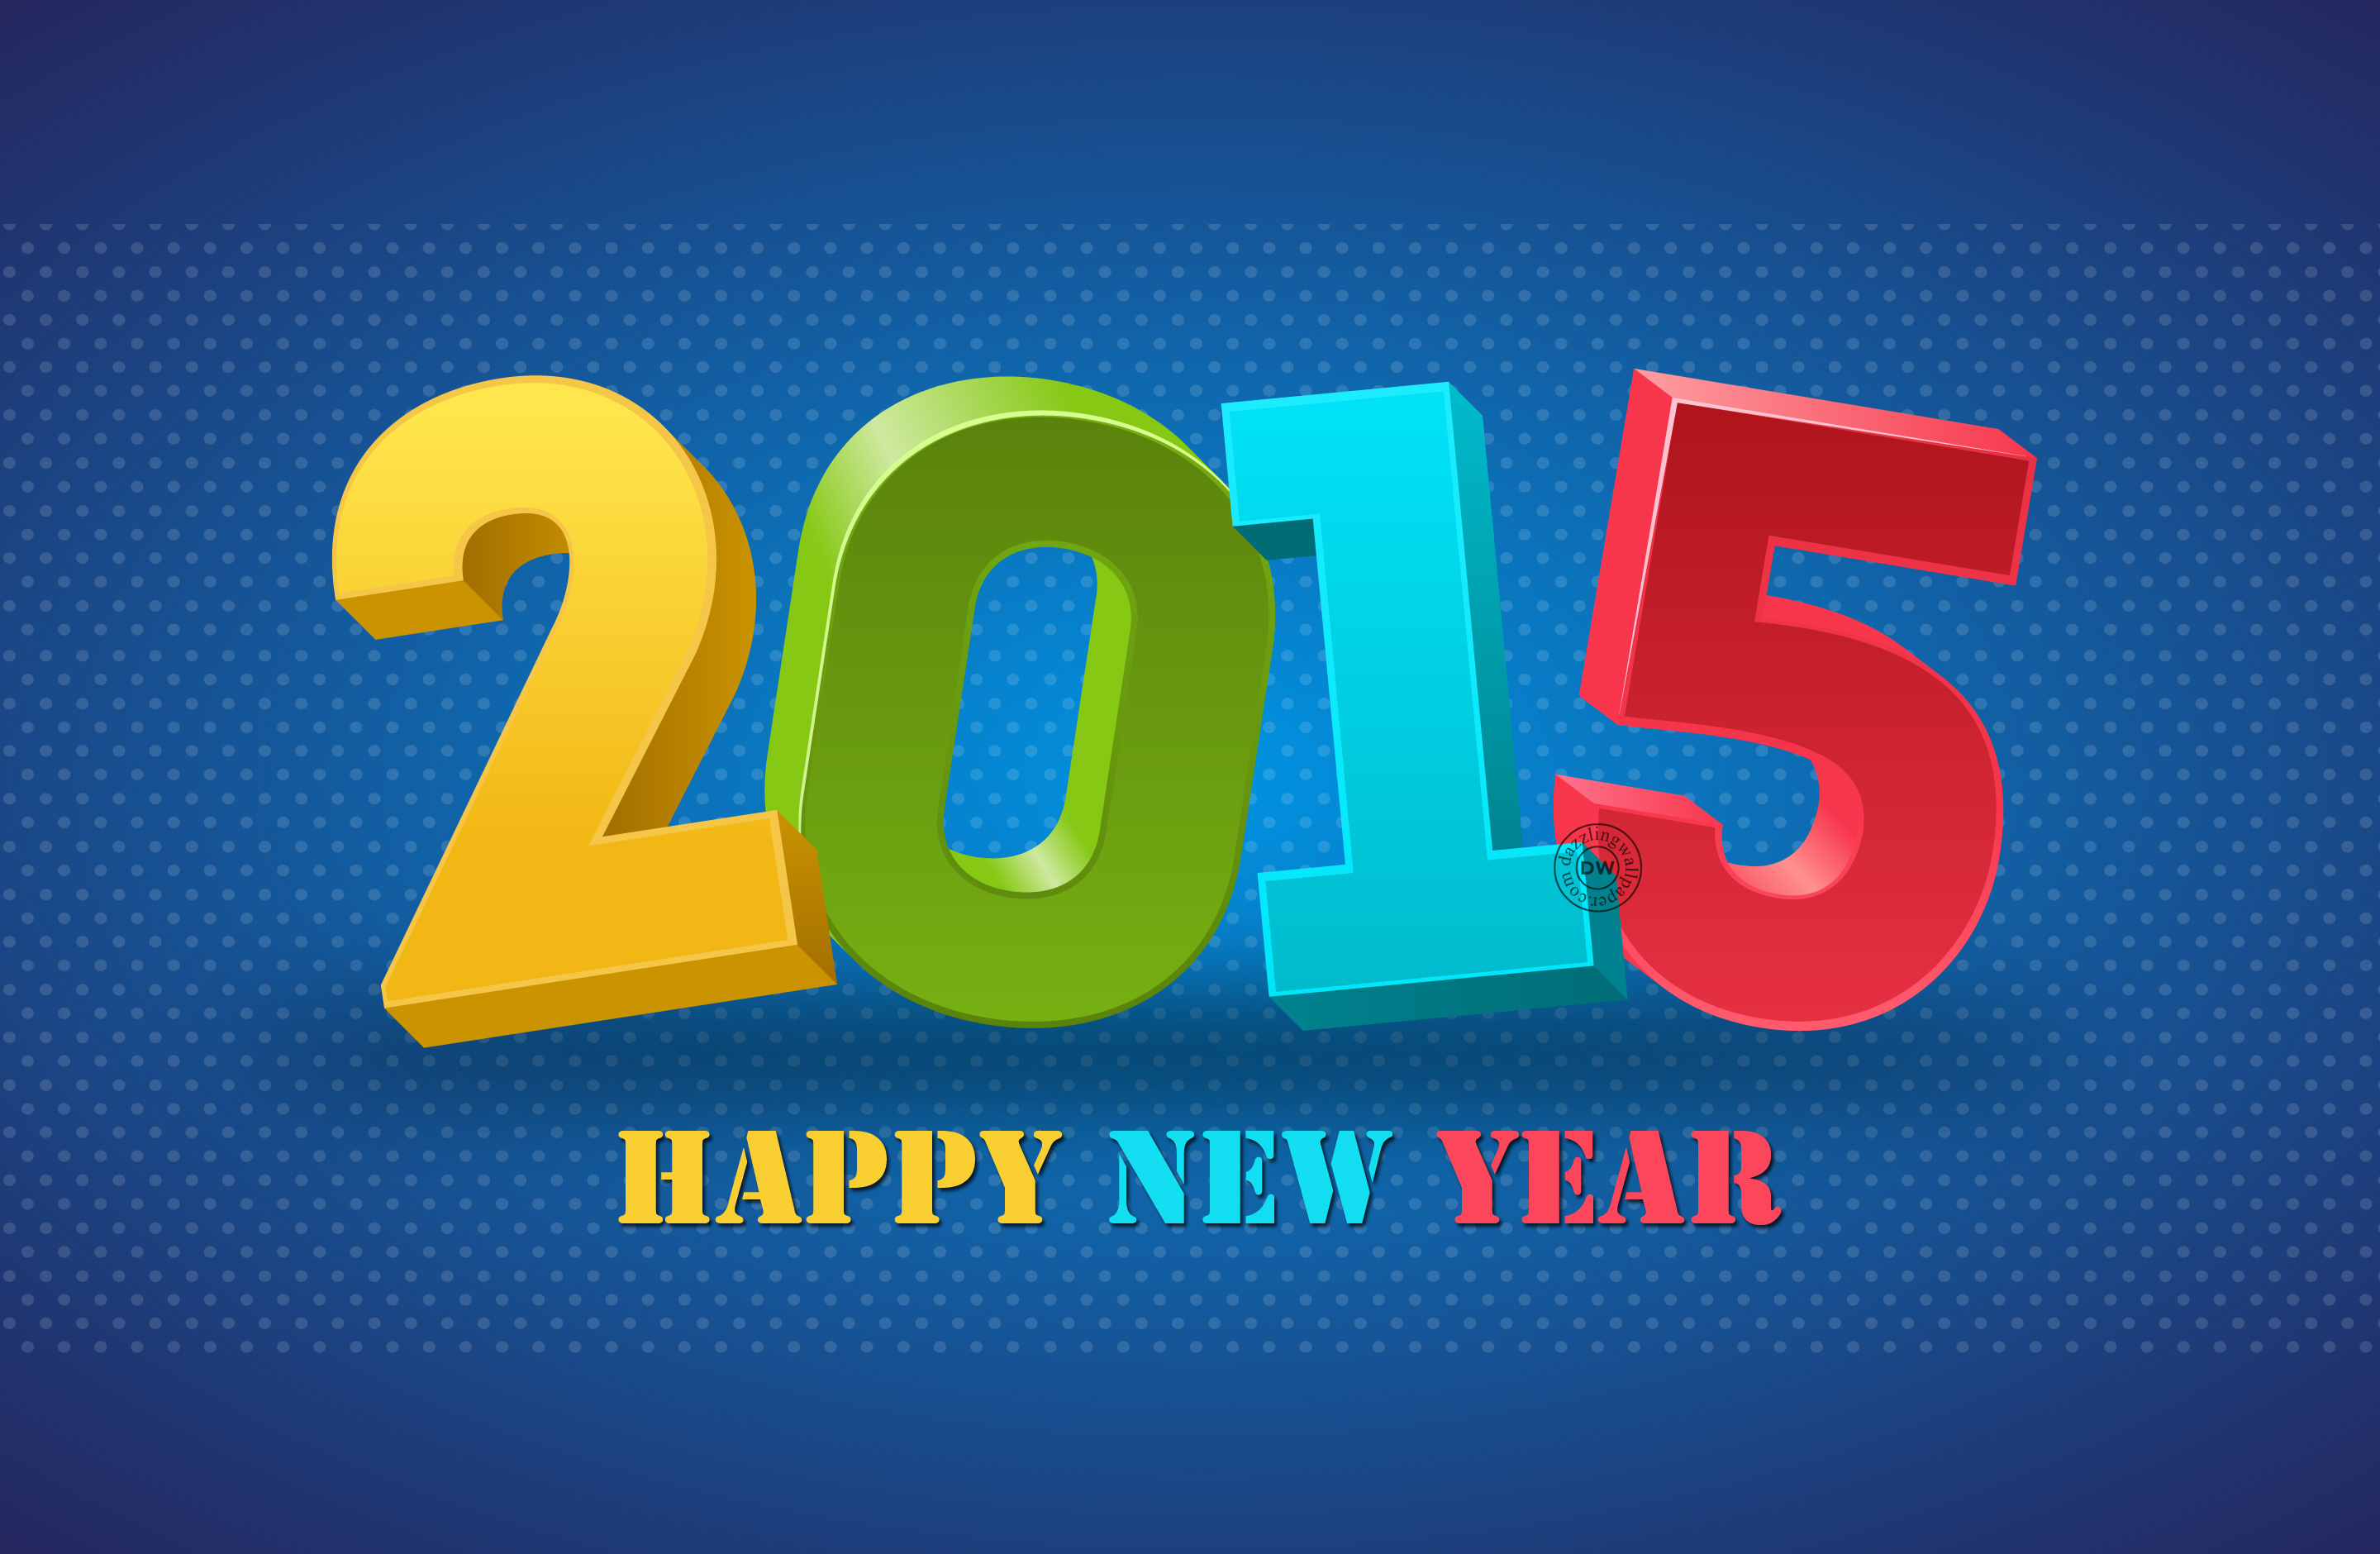 martin environmental solutions, inc. | happy new year